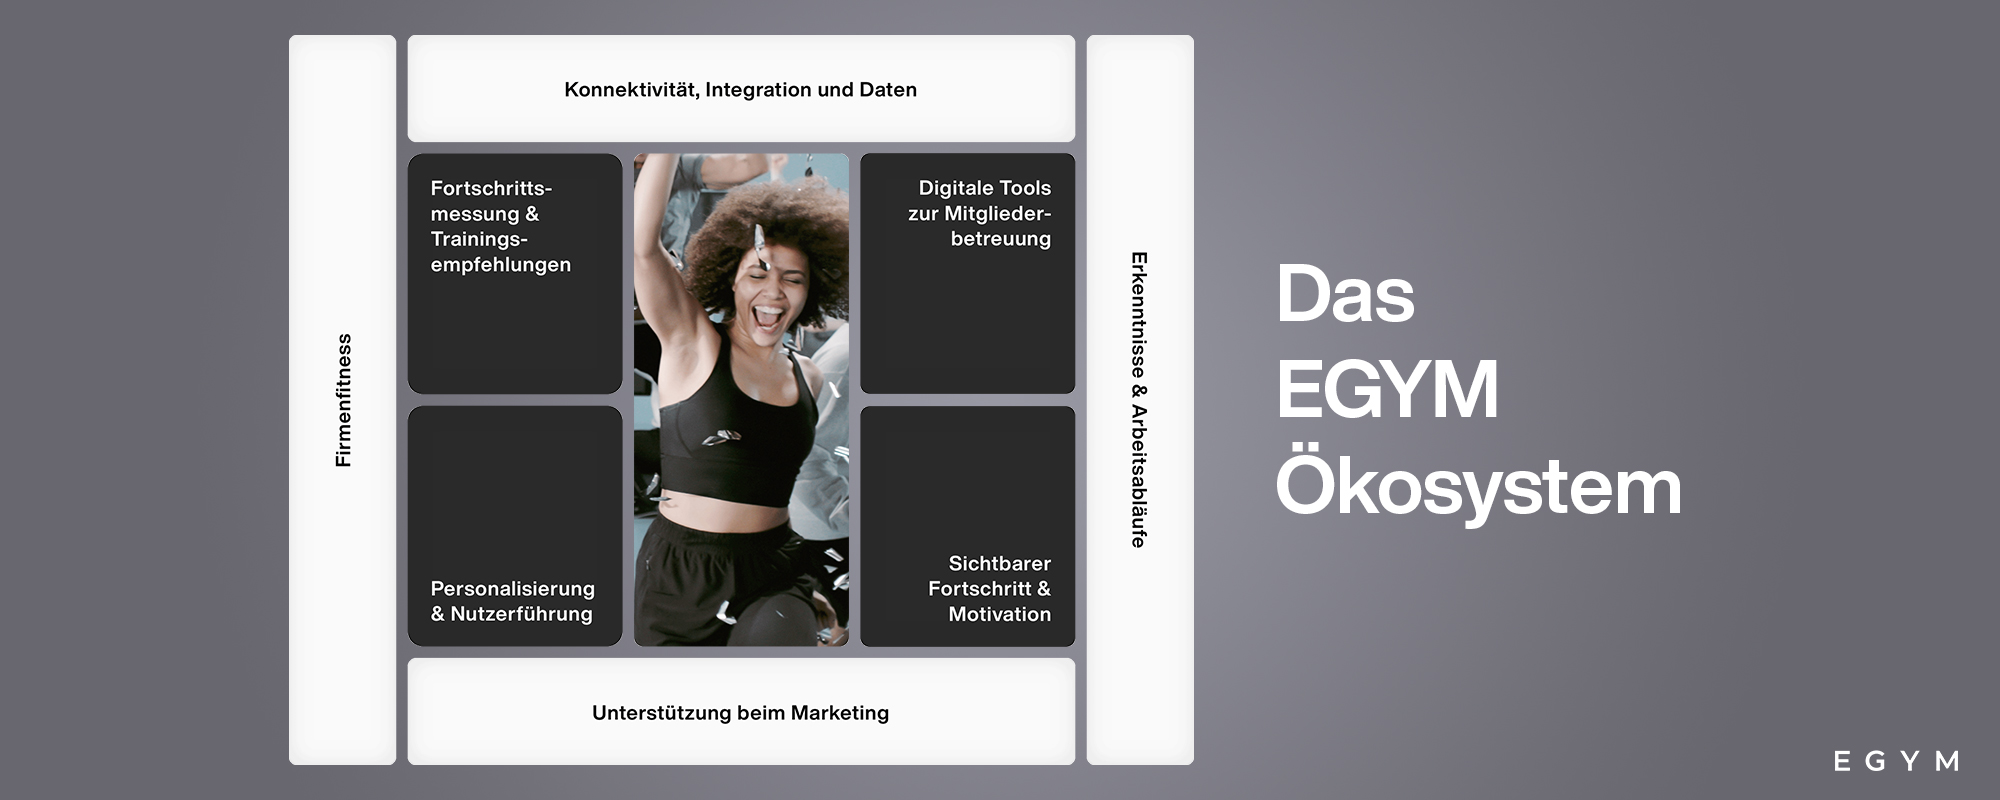 Die EGYM Experience